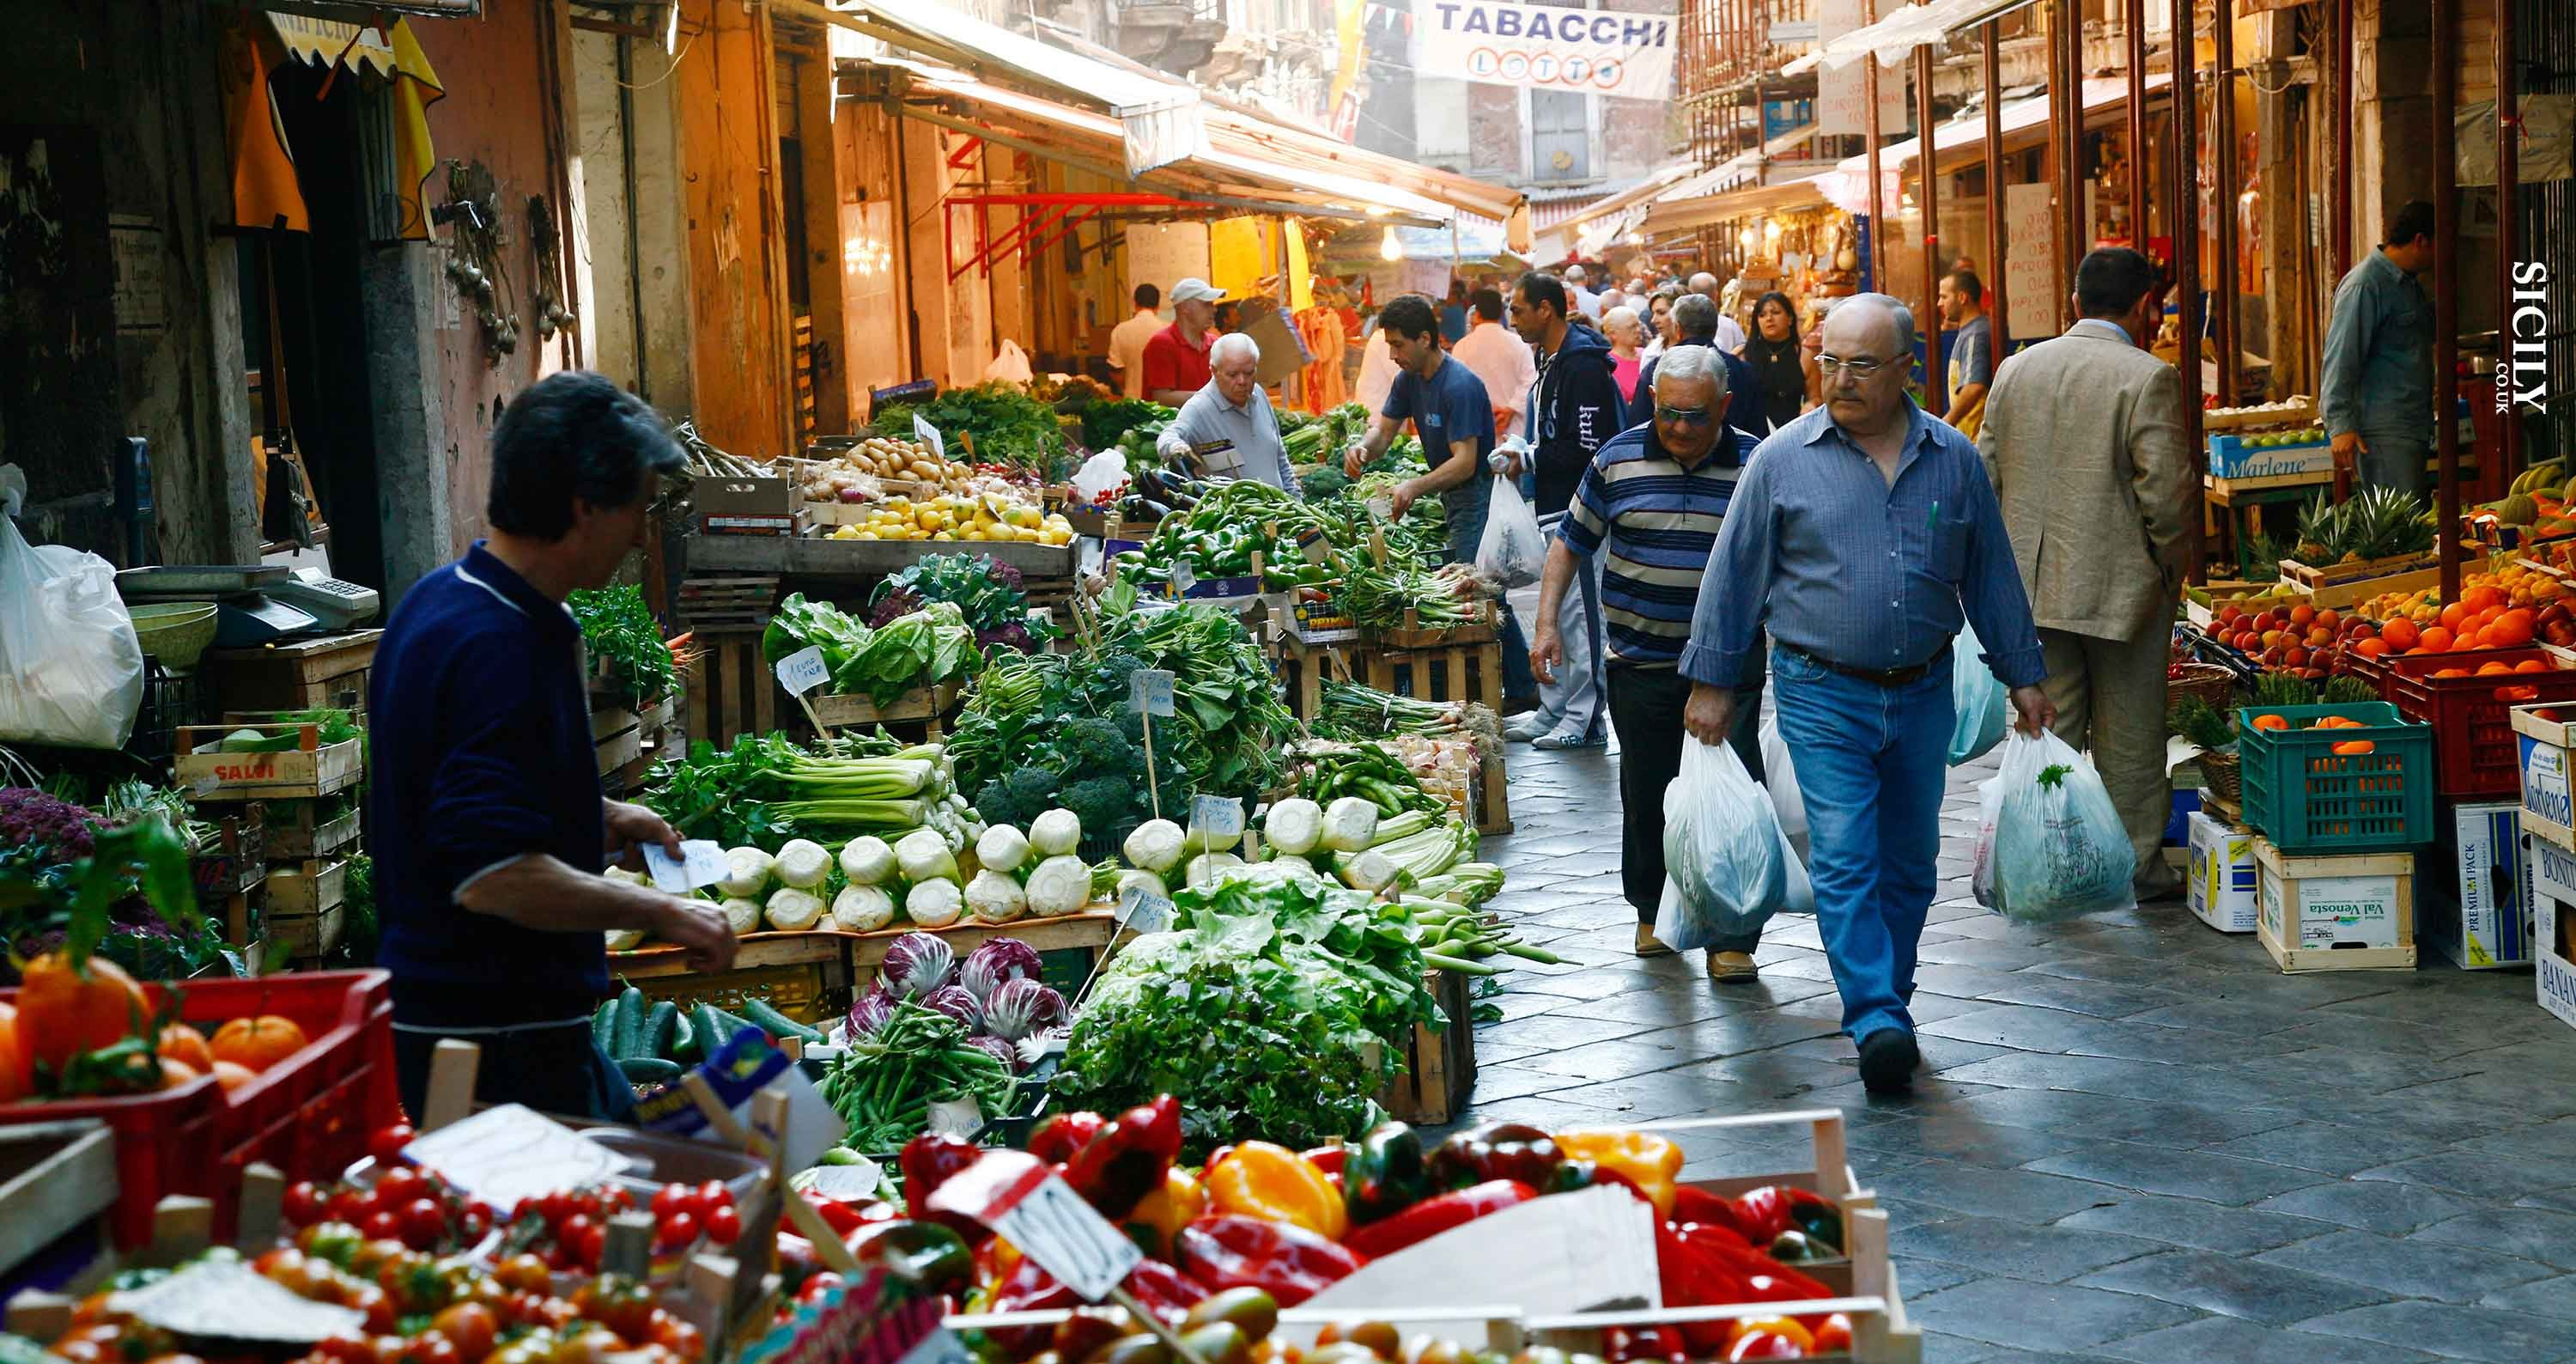 Markets In Palermo Sicily